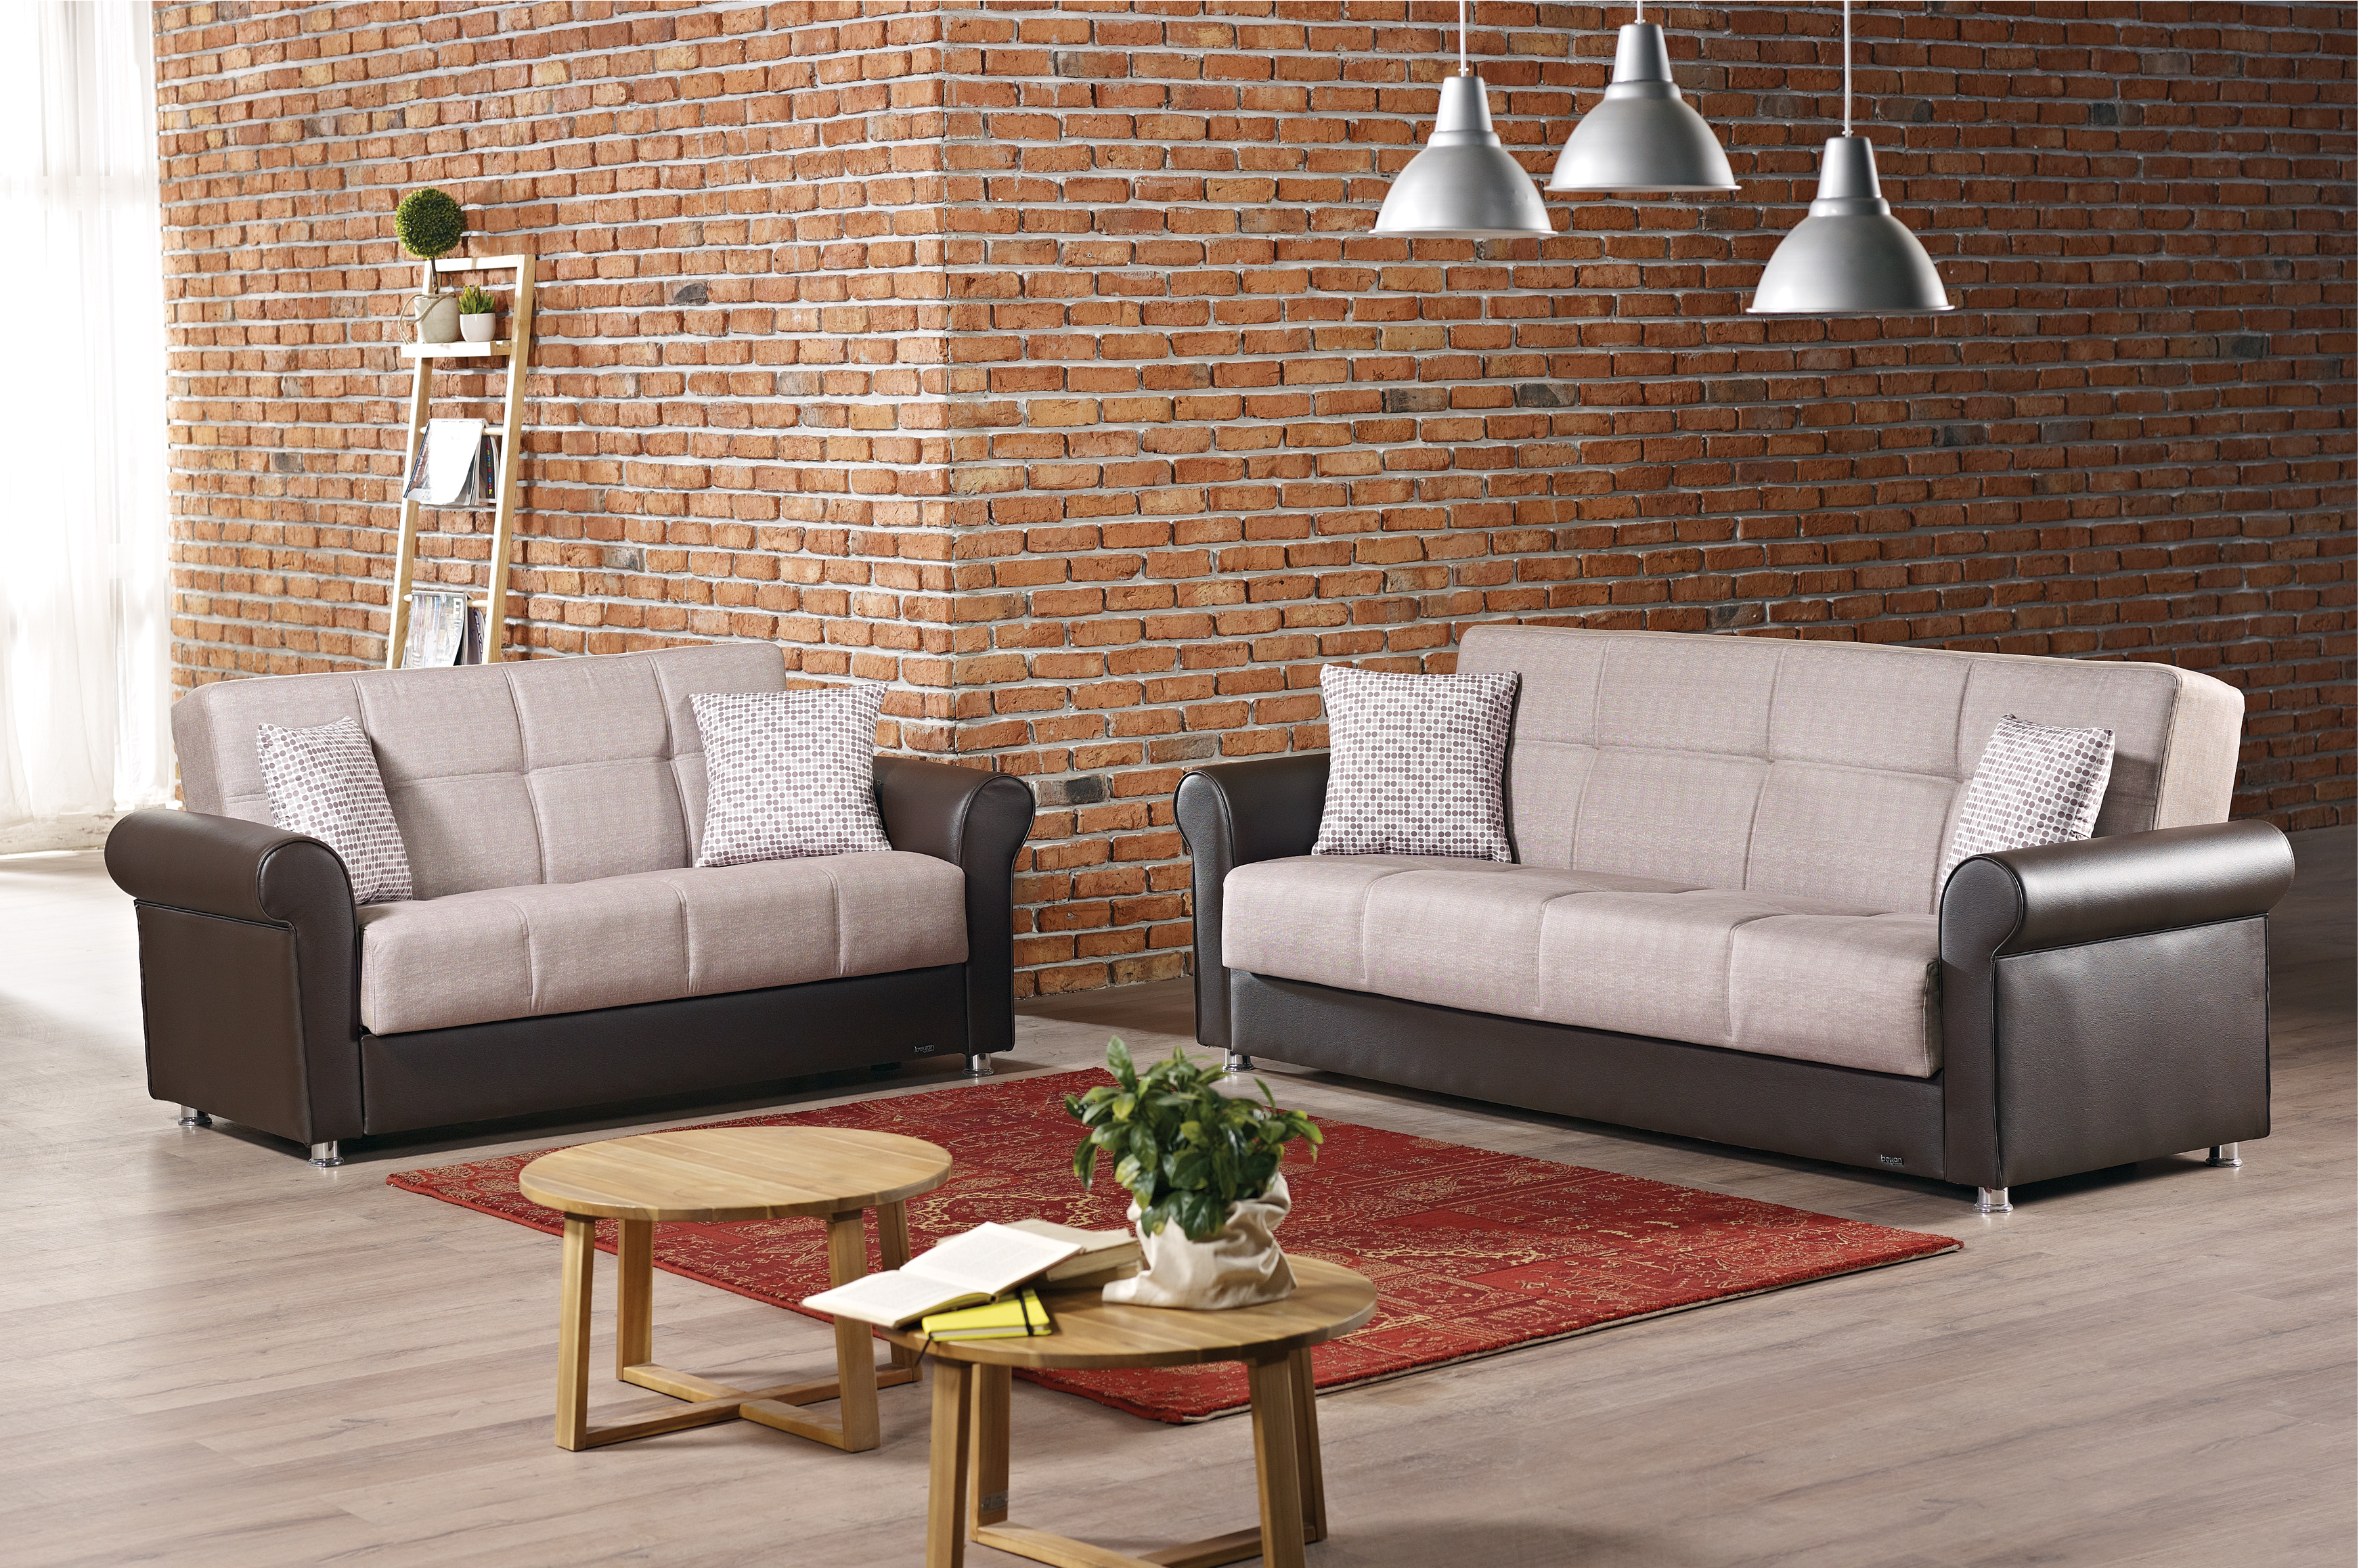 77 living room furniture sets michigan these for Living room furniture sets michigan